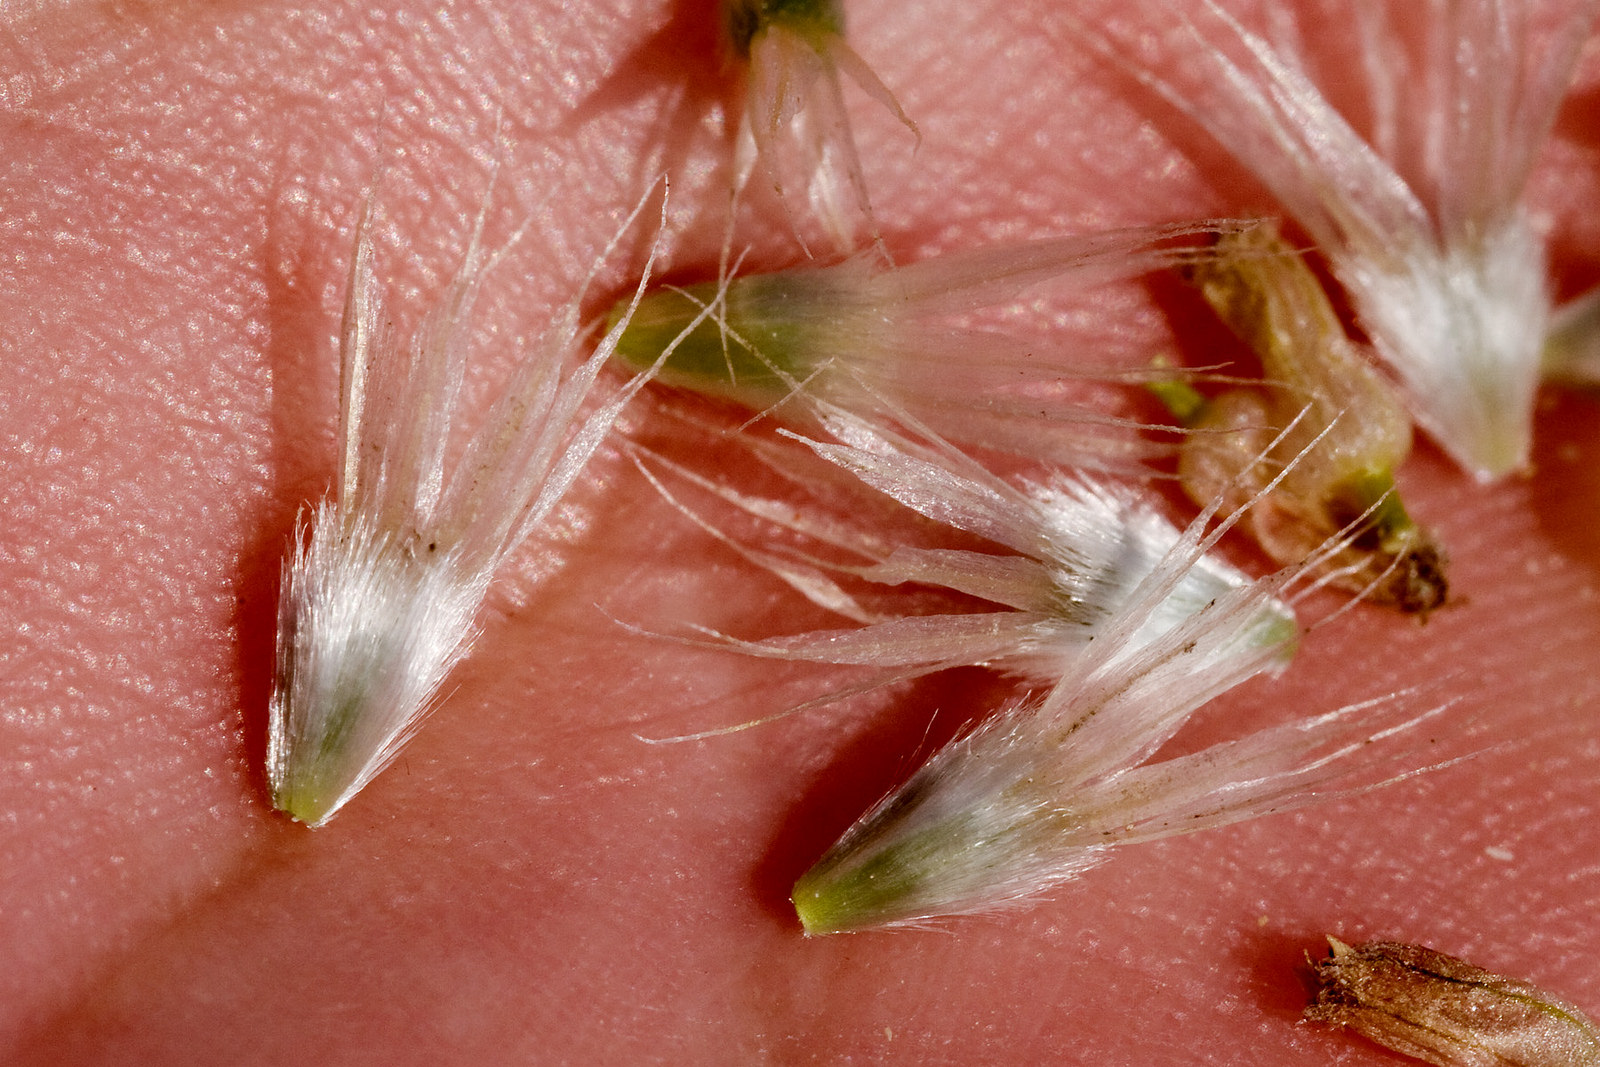 Seeds with white tufts at the ends